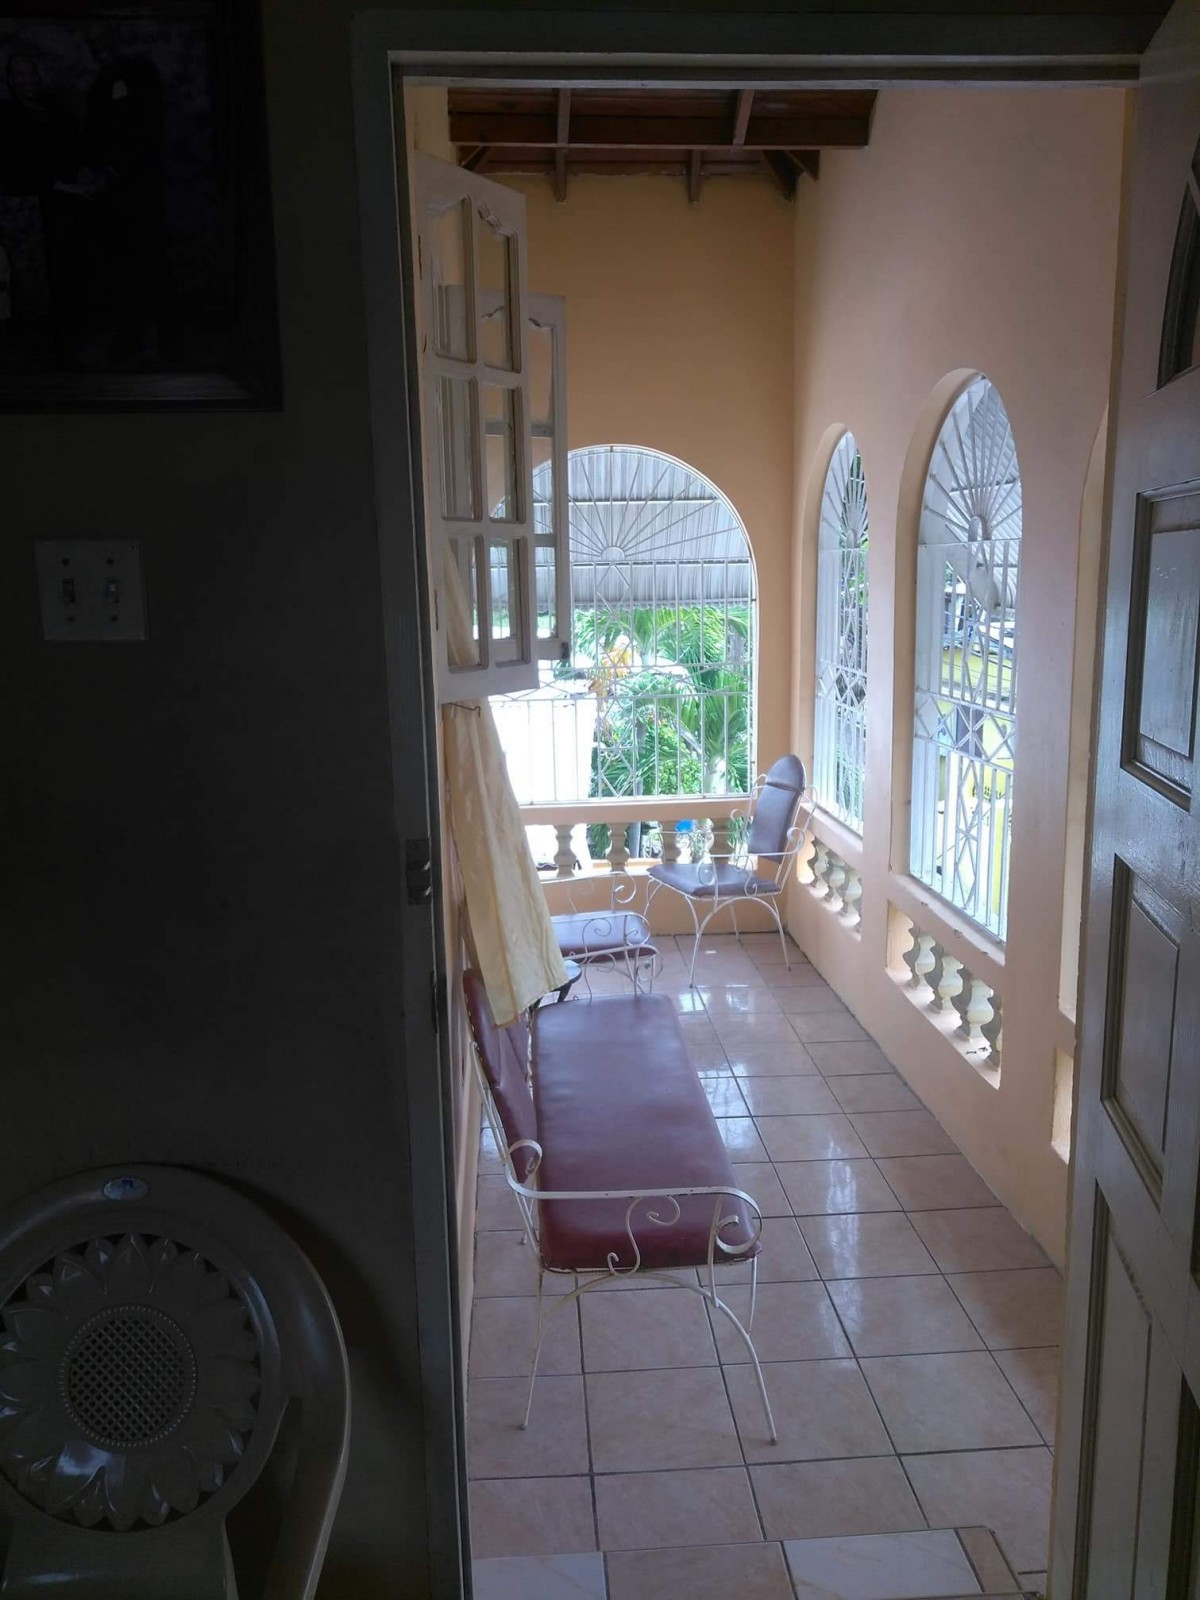 4 Bedroom 2 Bathroom House For Sale In Spanish Town St